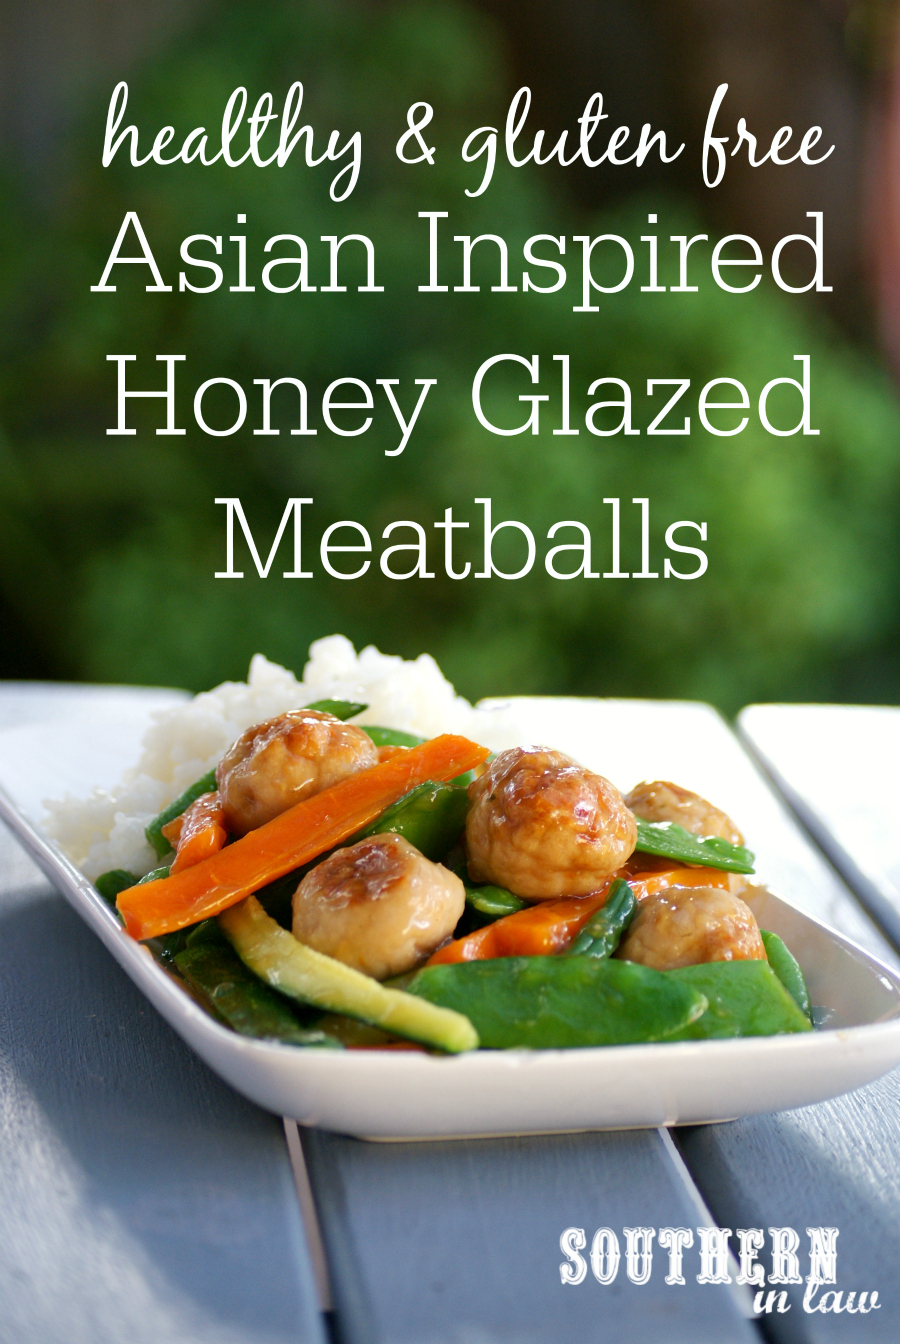 Southern in law recipe asian inspired honey glazed meatballs healthy asian honey meatballs and vegetables recipe low fat gluten free high protein forumfinder Gallery